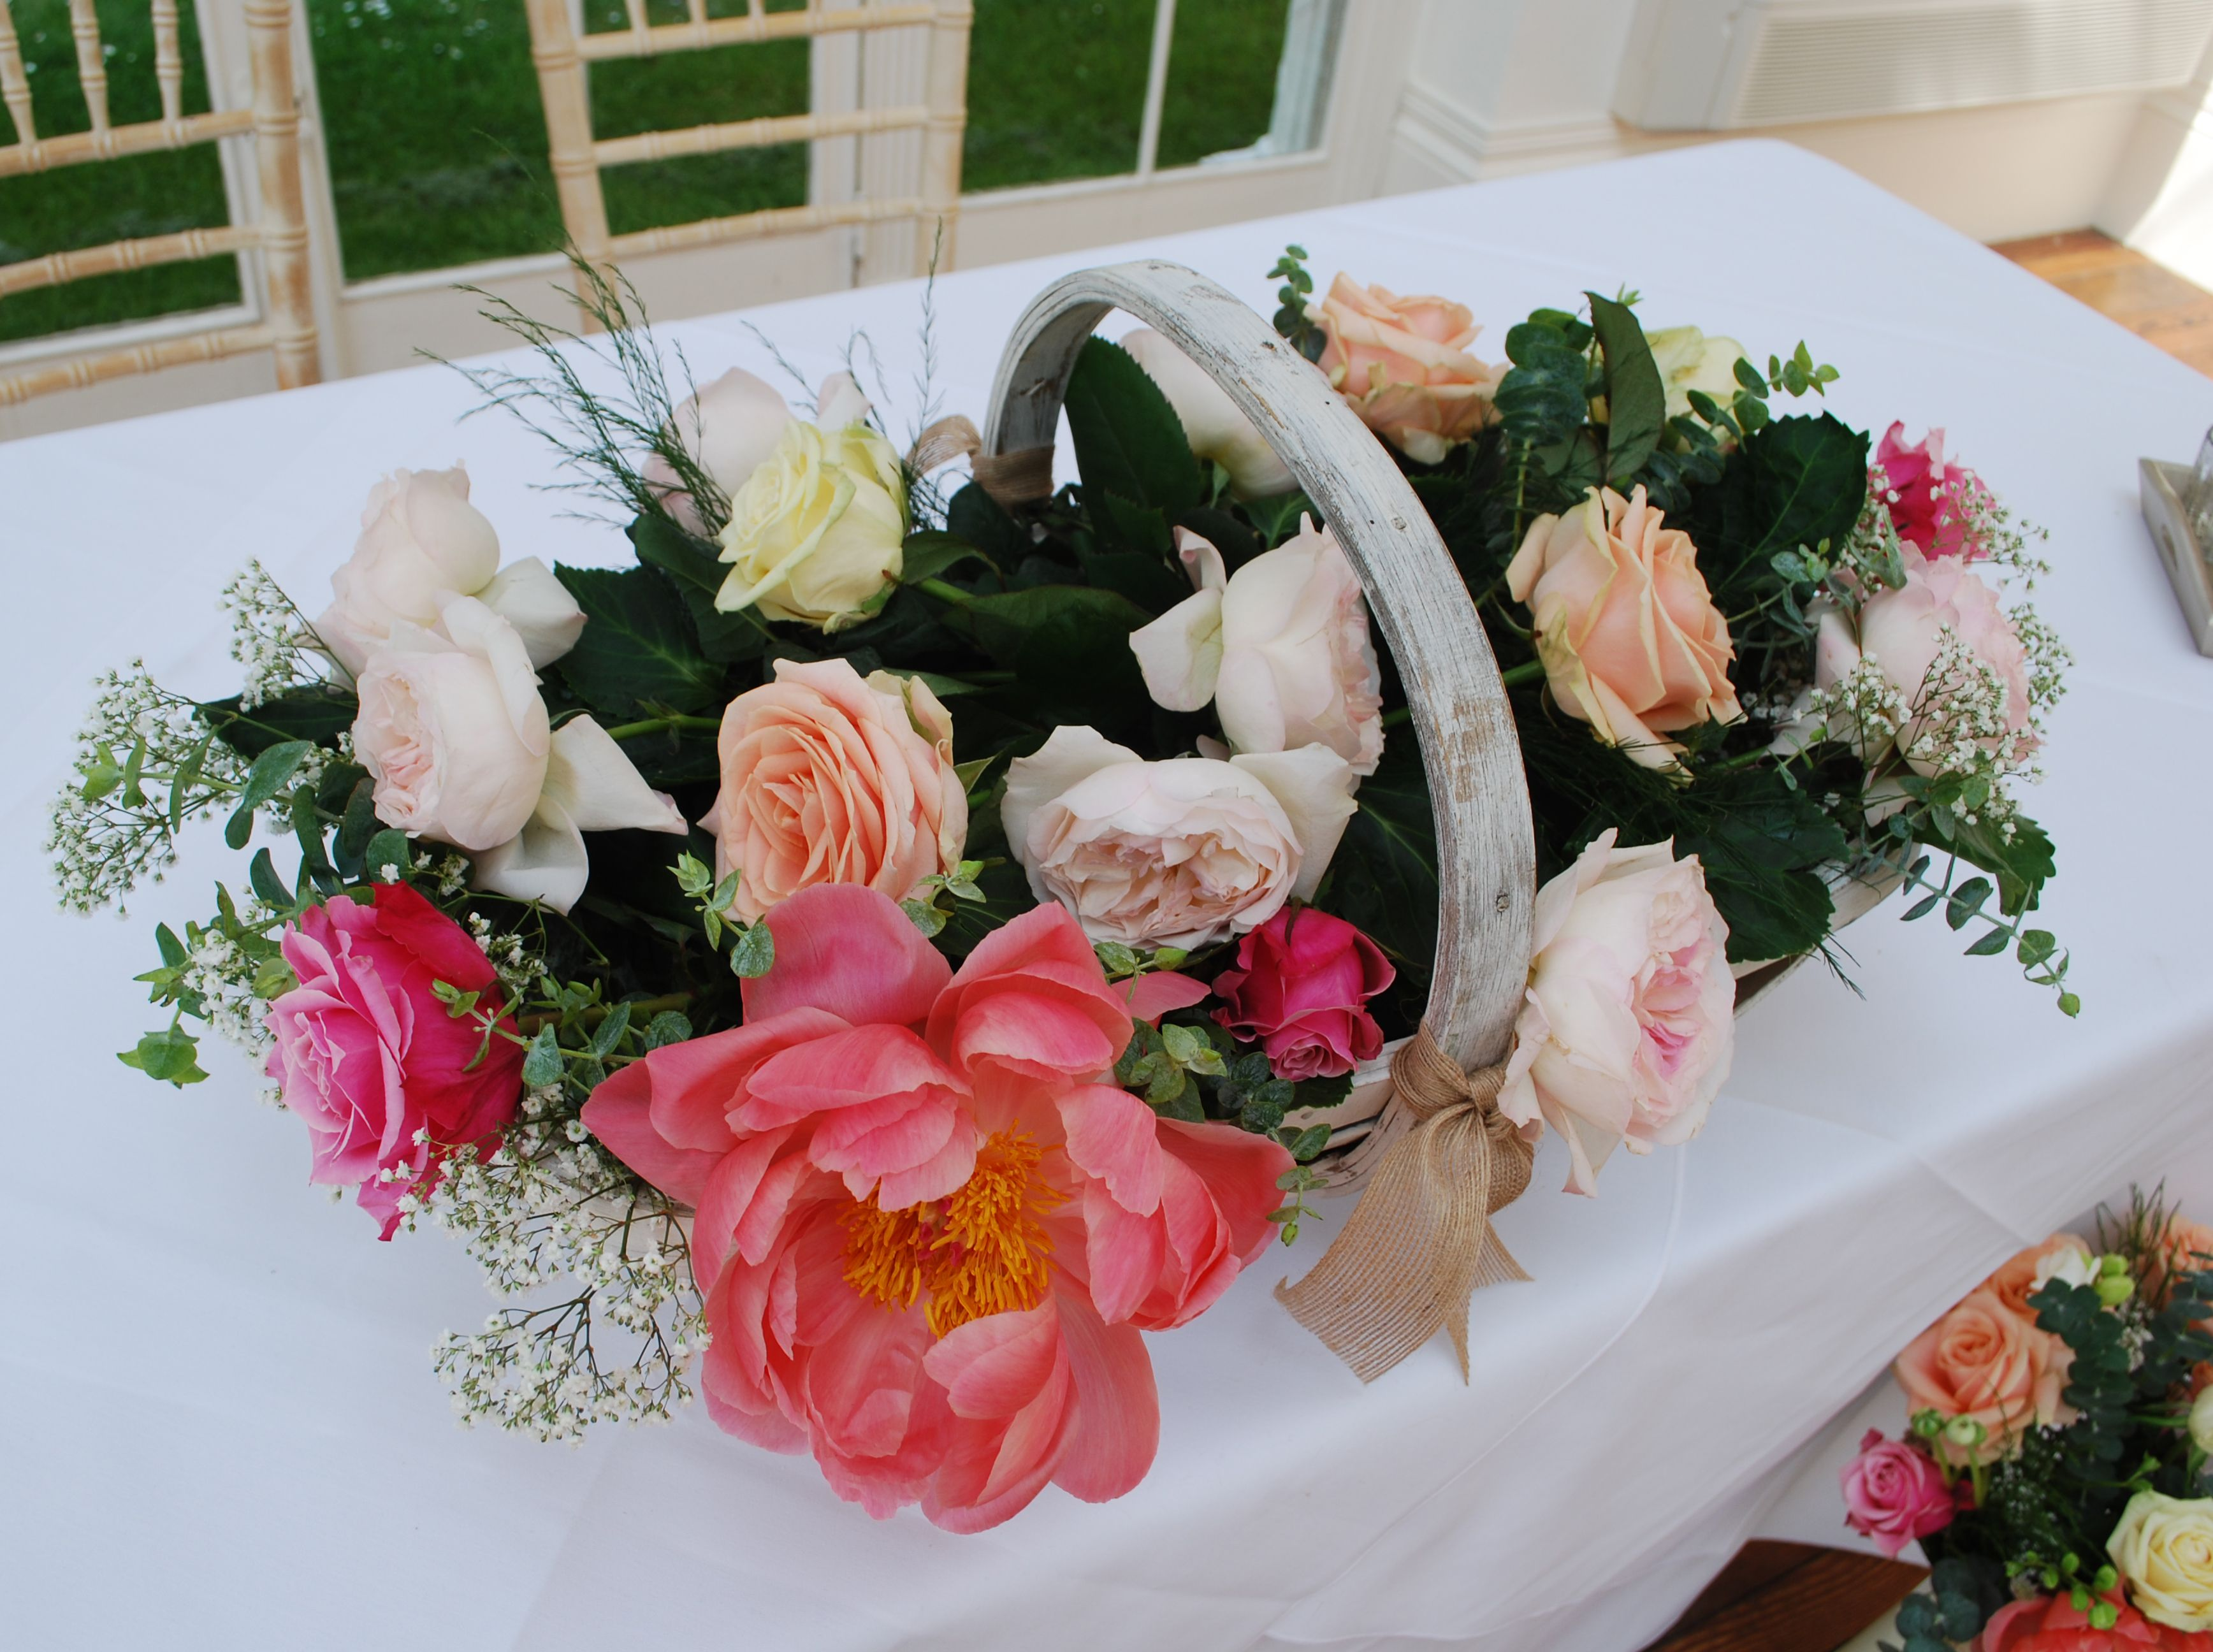 Trug of flowers for the wedding at Barton Hall Orangery, Kettering, Northants. Beautiful display of peony and roses in the coral and cream wedding theme. www.fieldgateflowers.co.uk